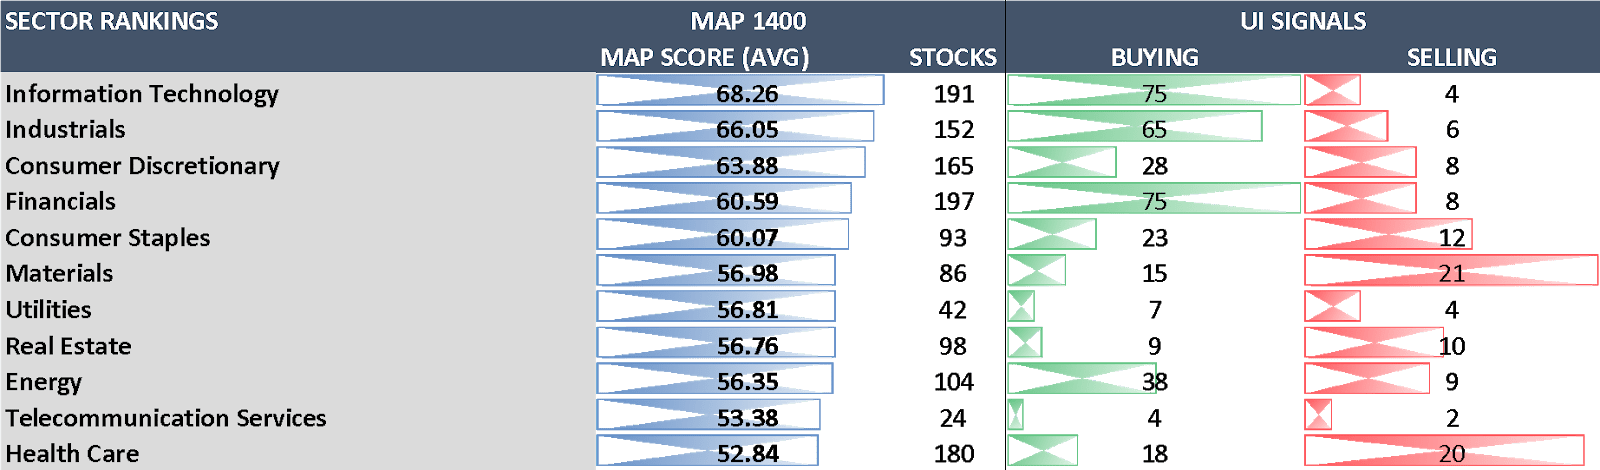 Unusual institutional (UI) signals by sector